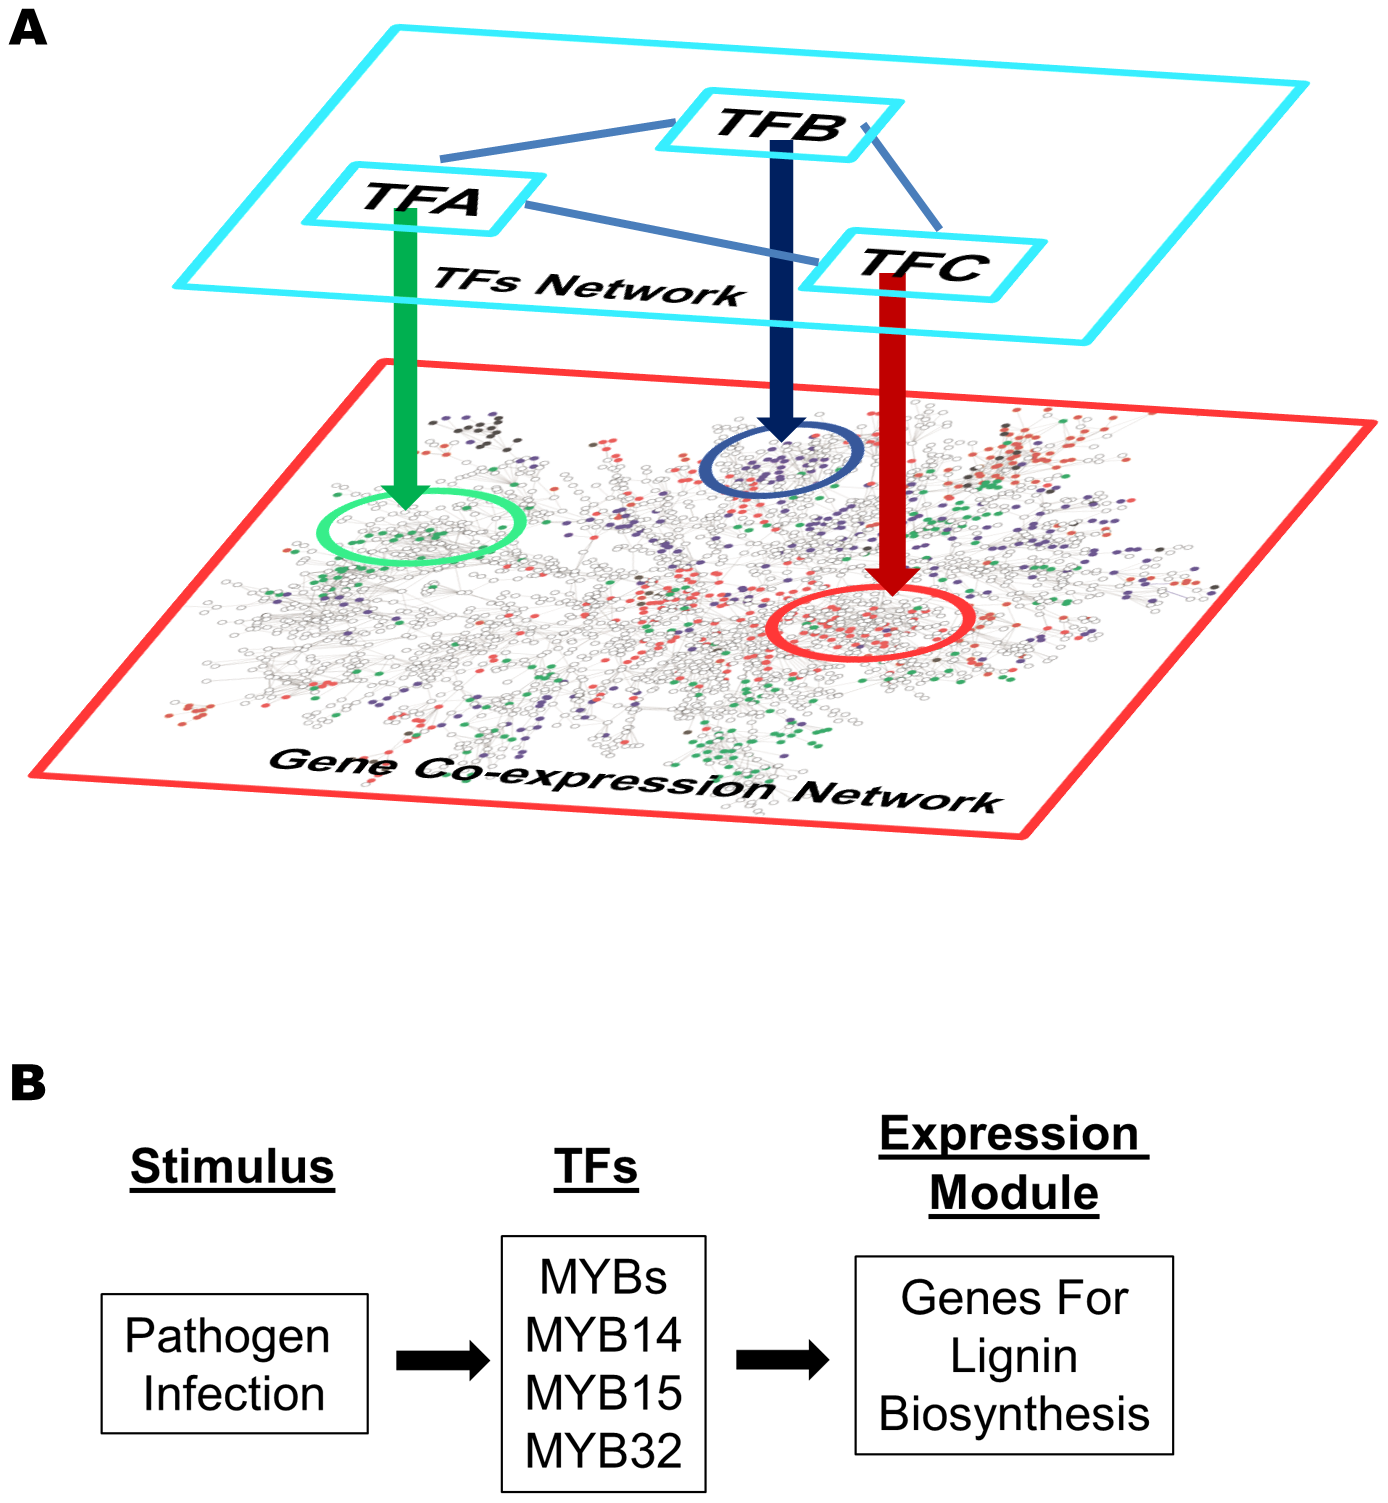 Gene expression modules regulated by transcription factors in a gene co-expression network.